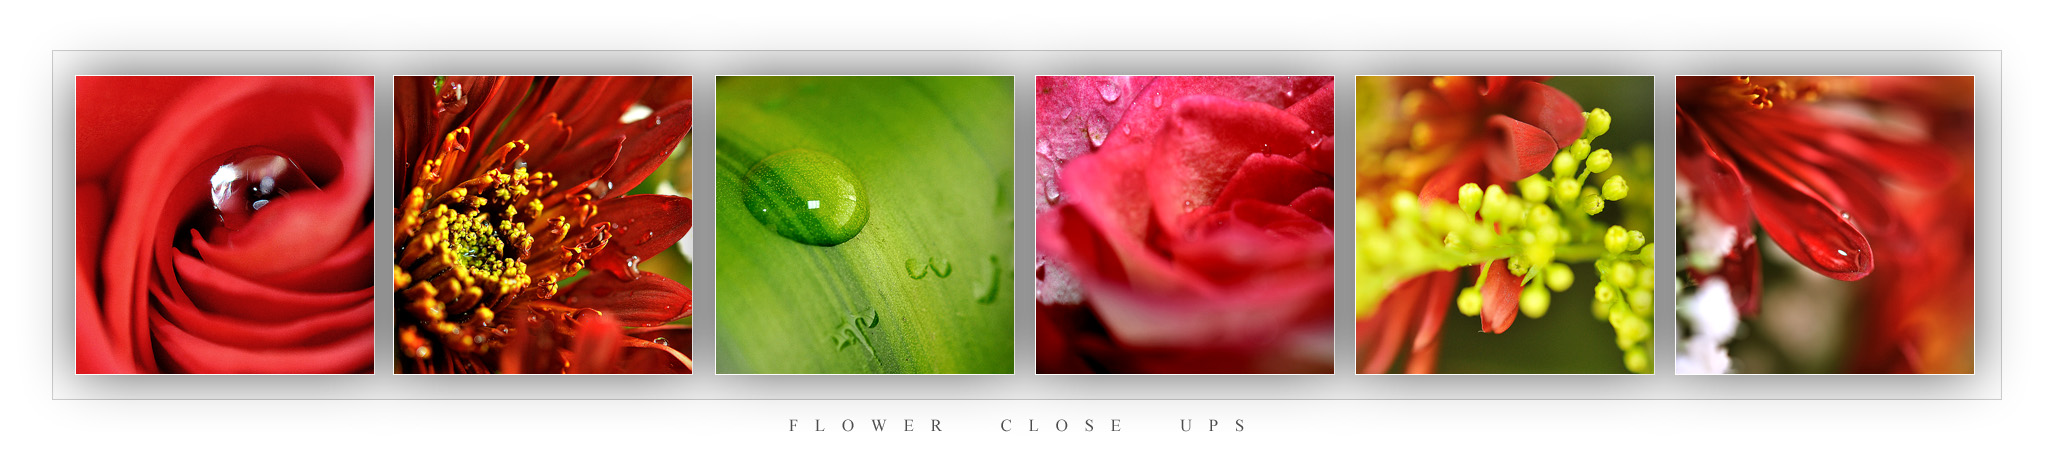 Flower Close Ups by AnubisGraph